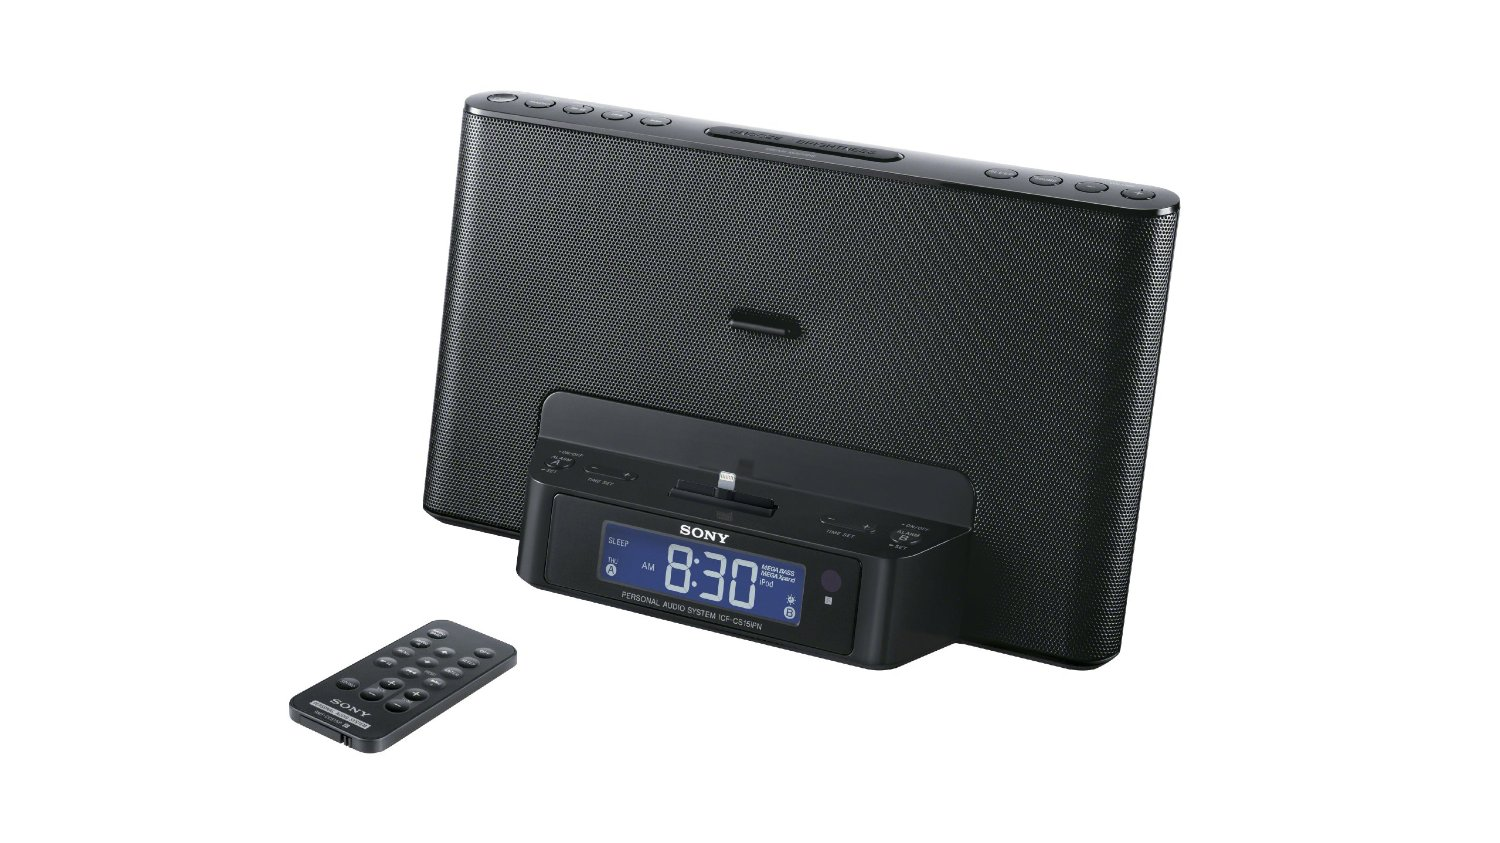 sony icfcs15ipn lightning iphone/ipod clock radio